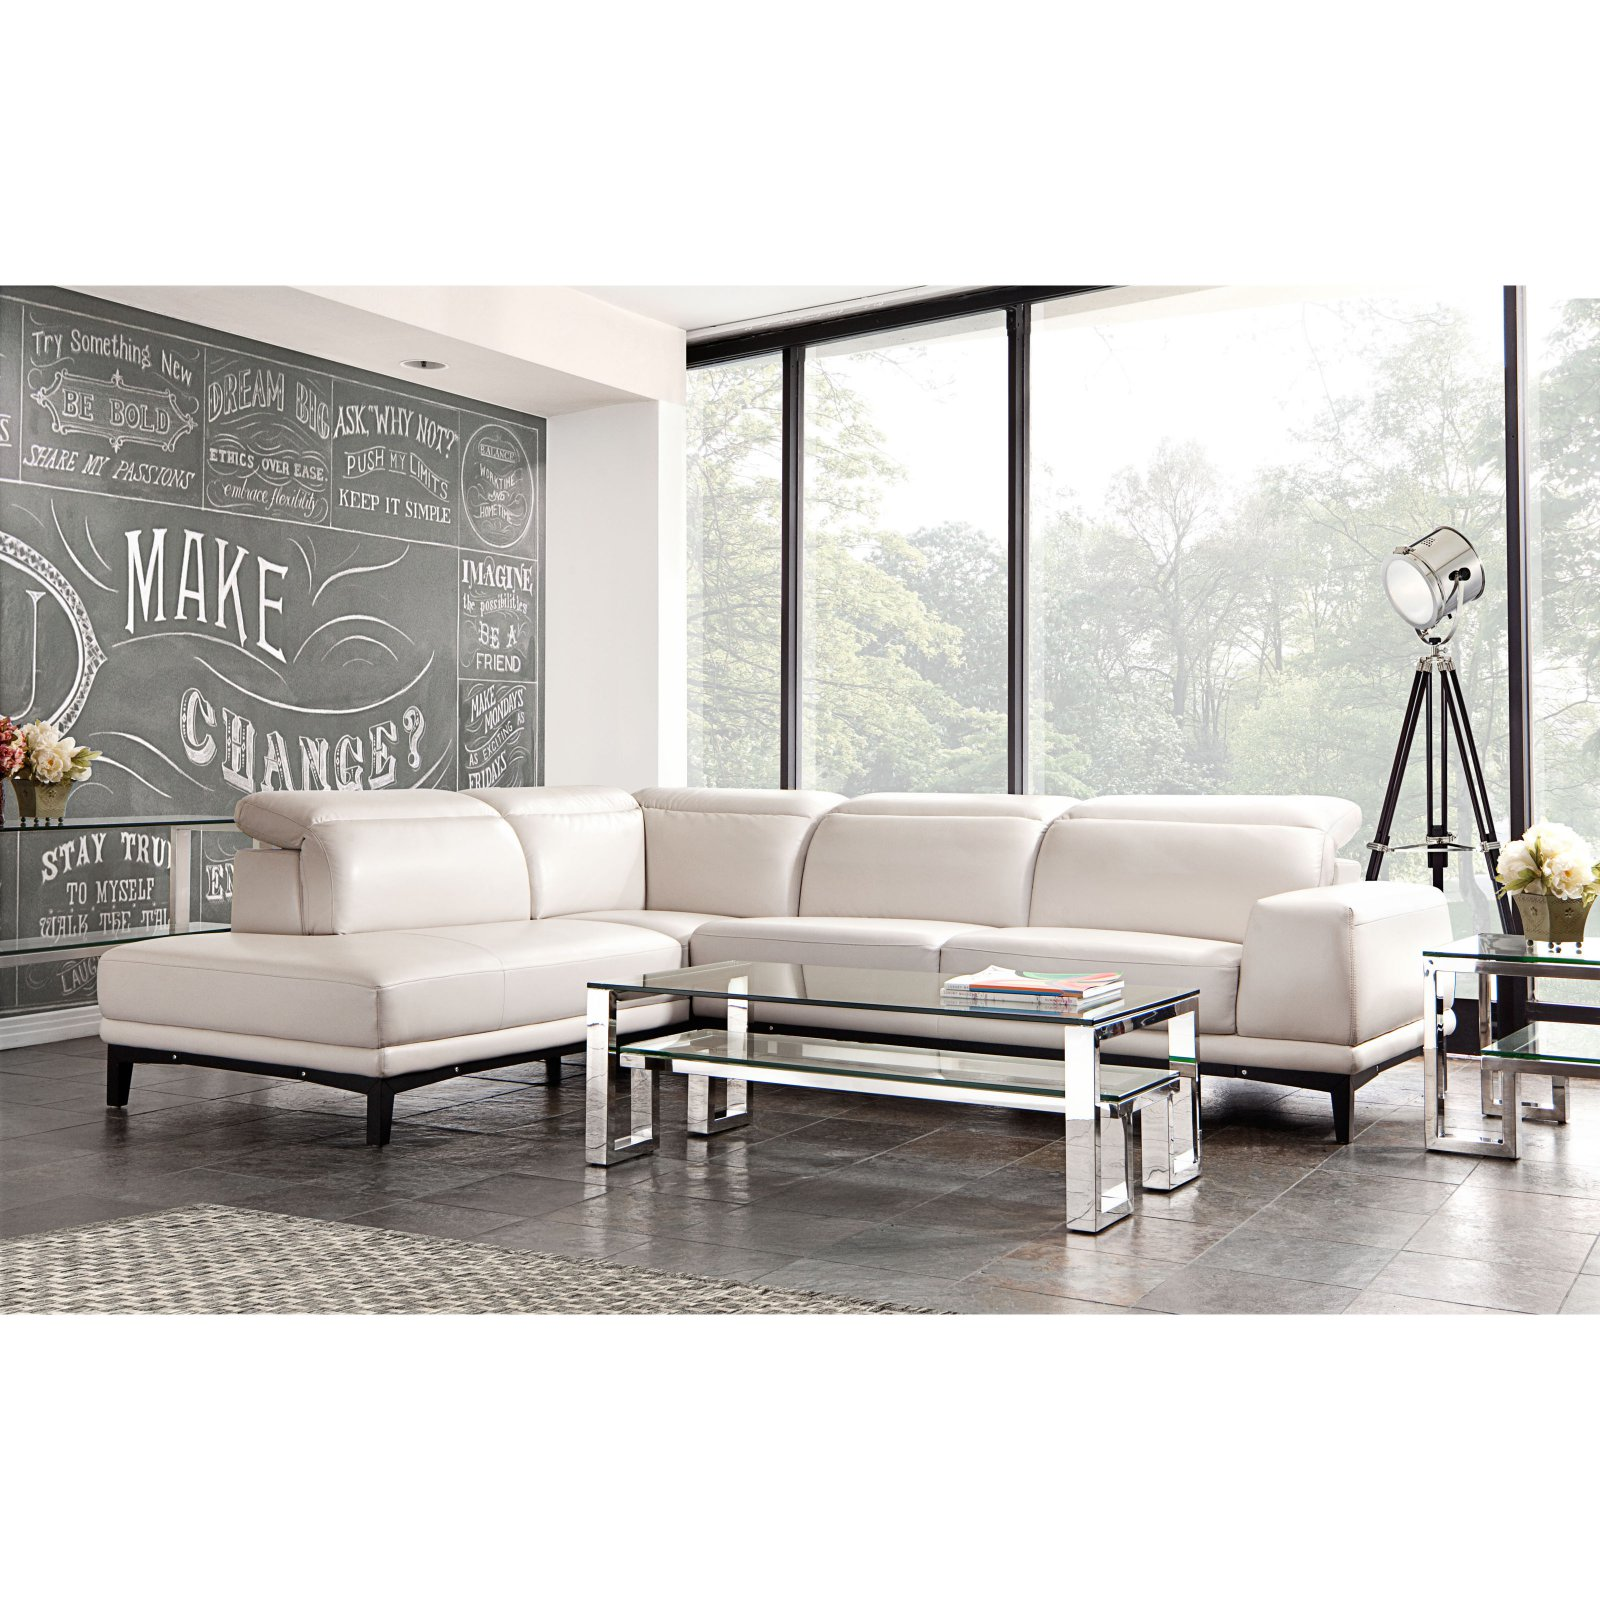 Diamond Sofa Pearl Leather Chaise Sectional with Adjustable Headrests (LF)